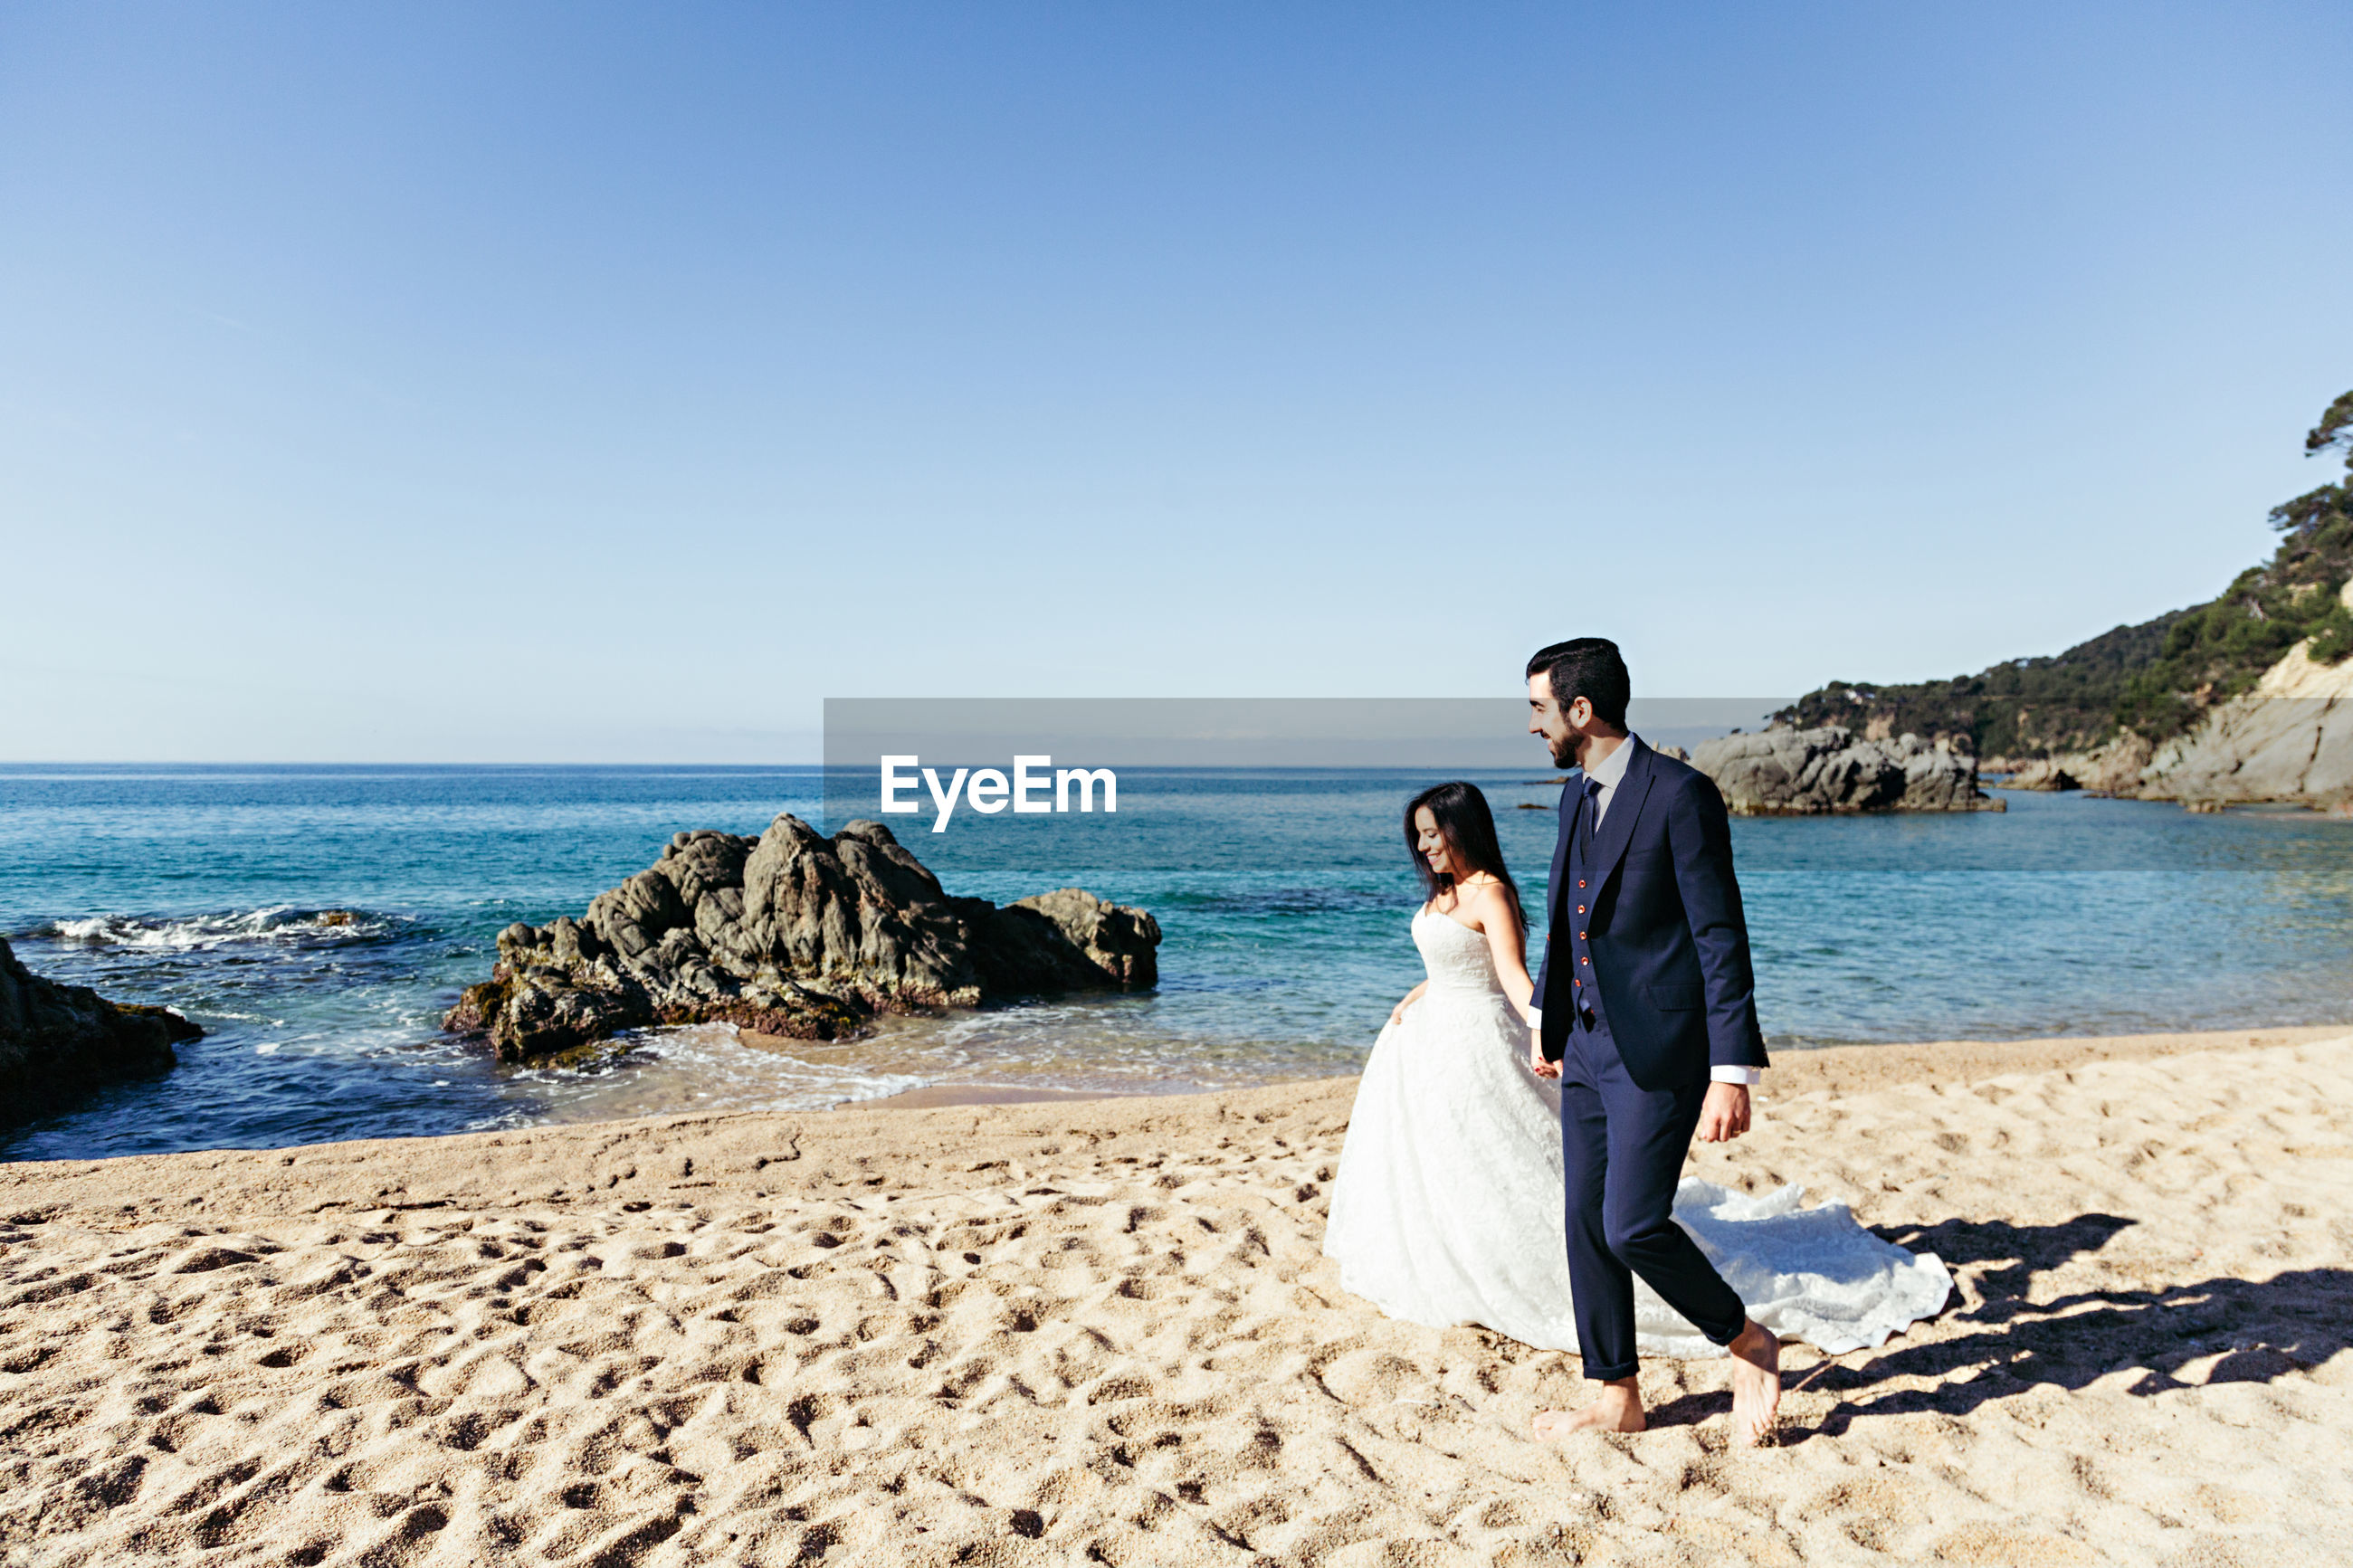 Newlywed couple walking at beach against clear sky during sunny day